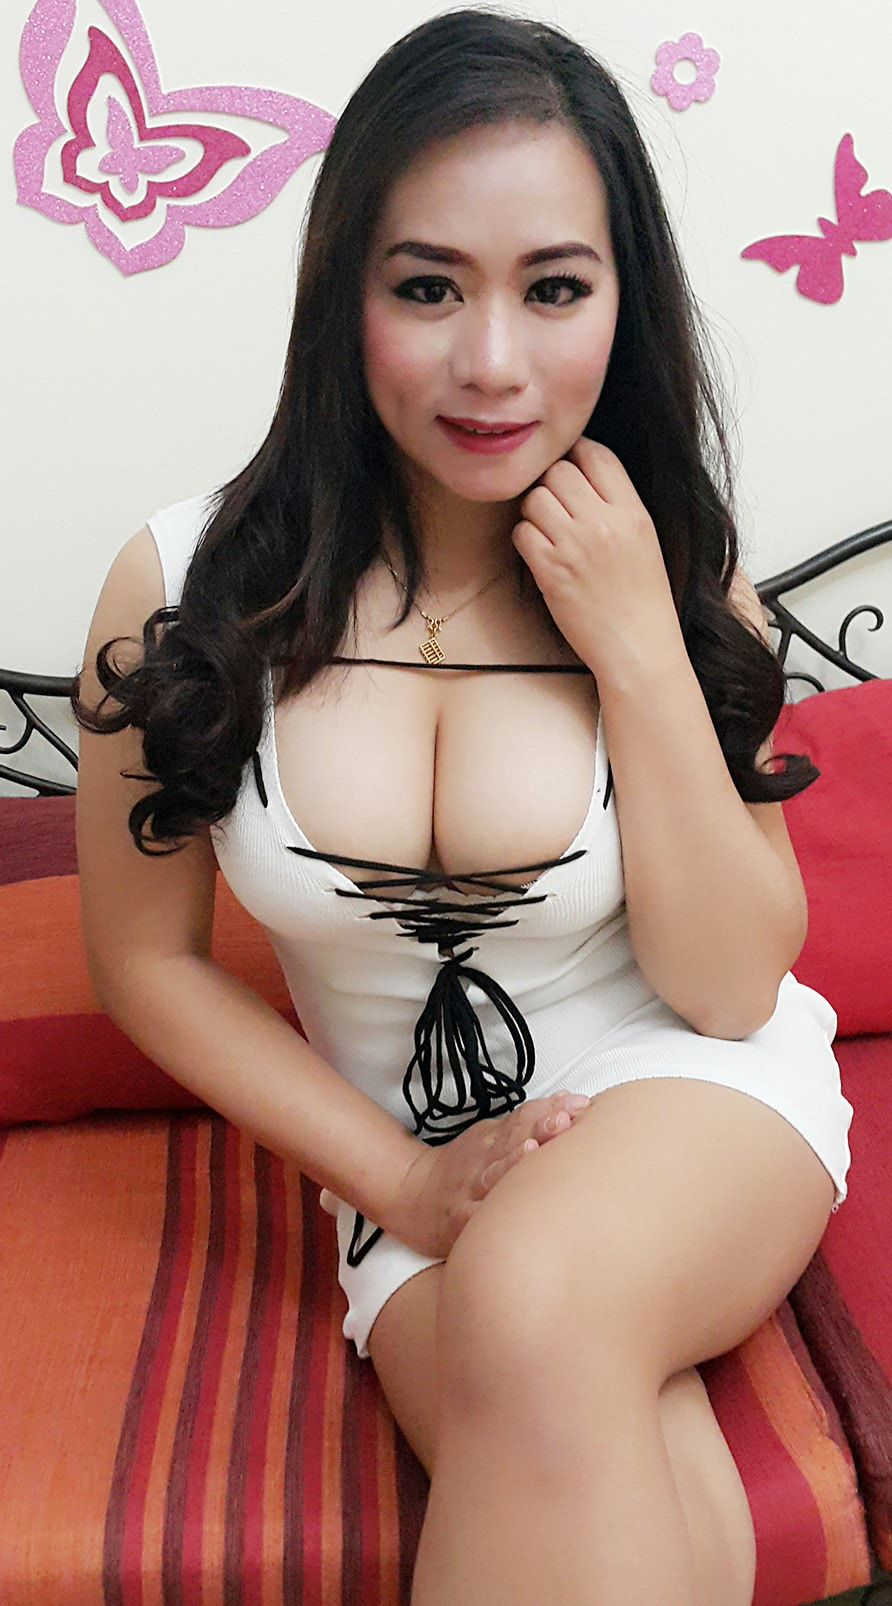 thai escort oslo datingtjenester